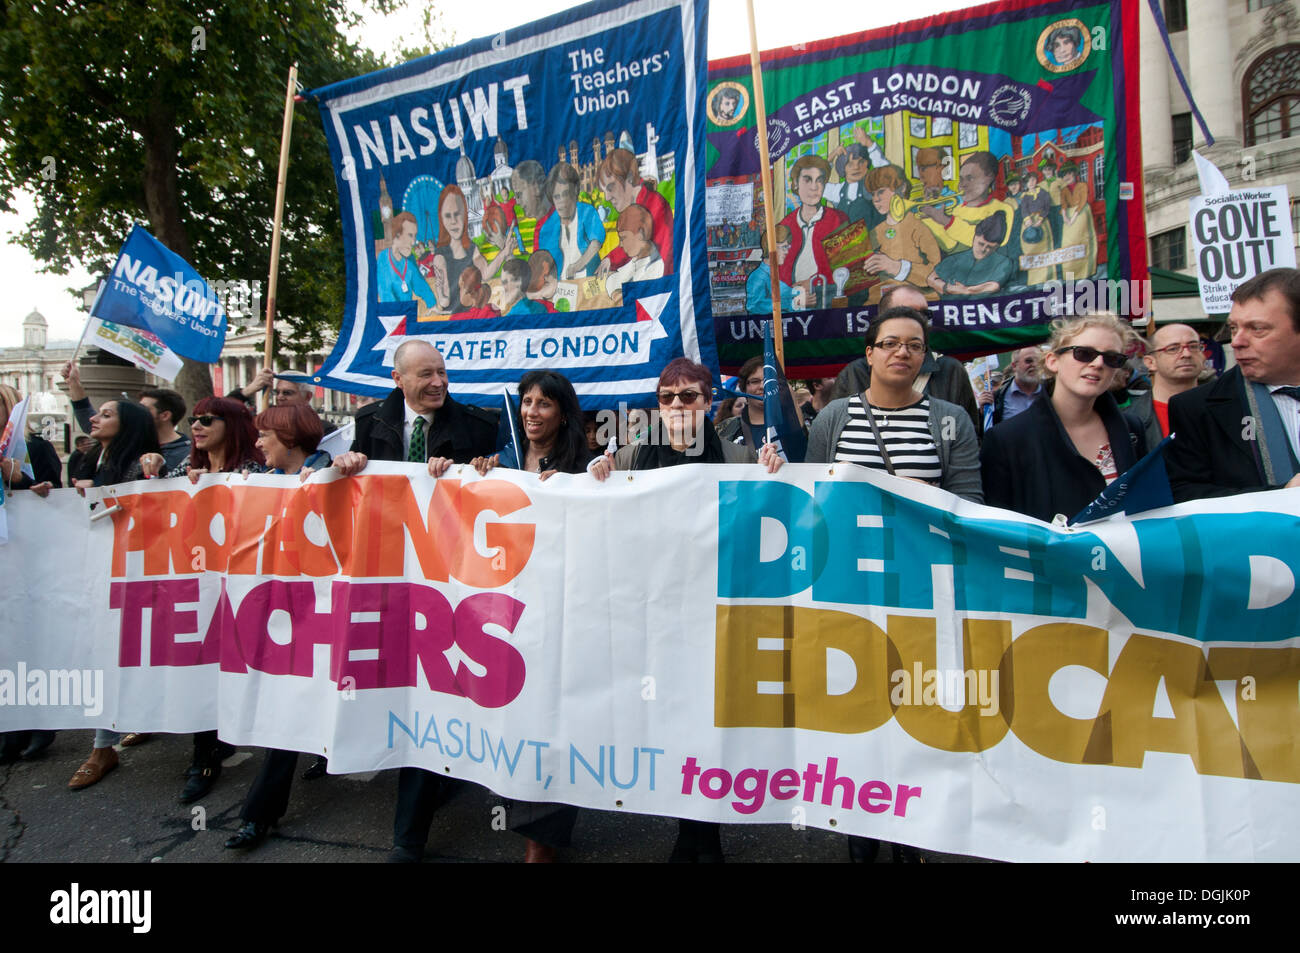 October 17th 2013. Teachers demonstrate against proposed changes to pensions, marching with Union banners - Stock Image